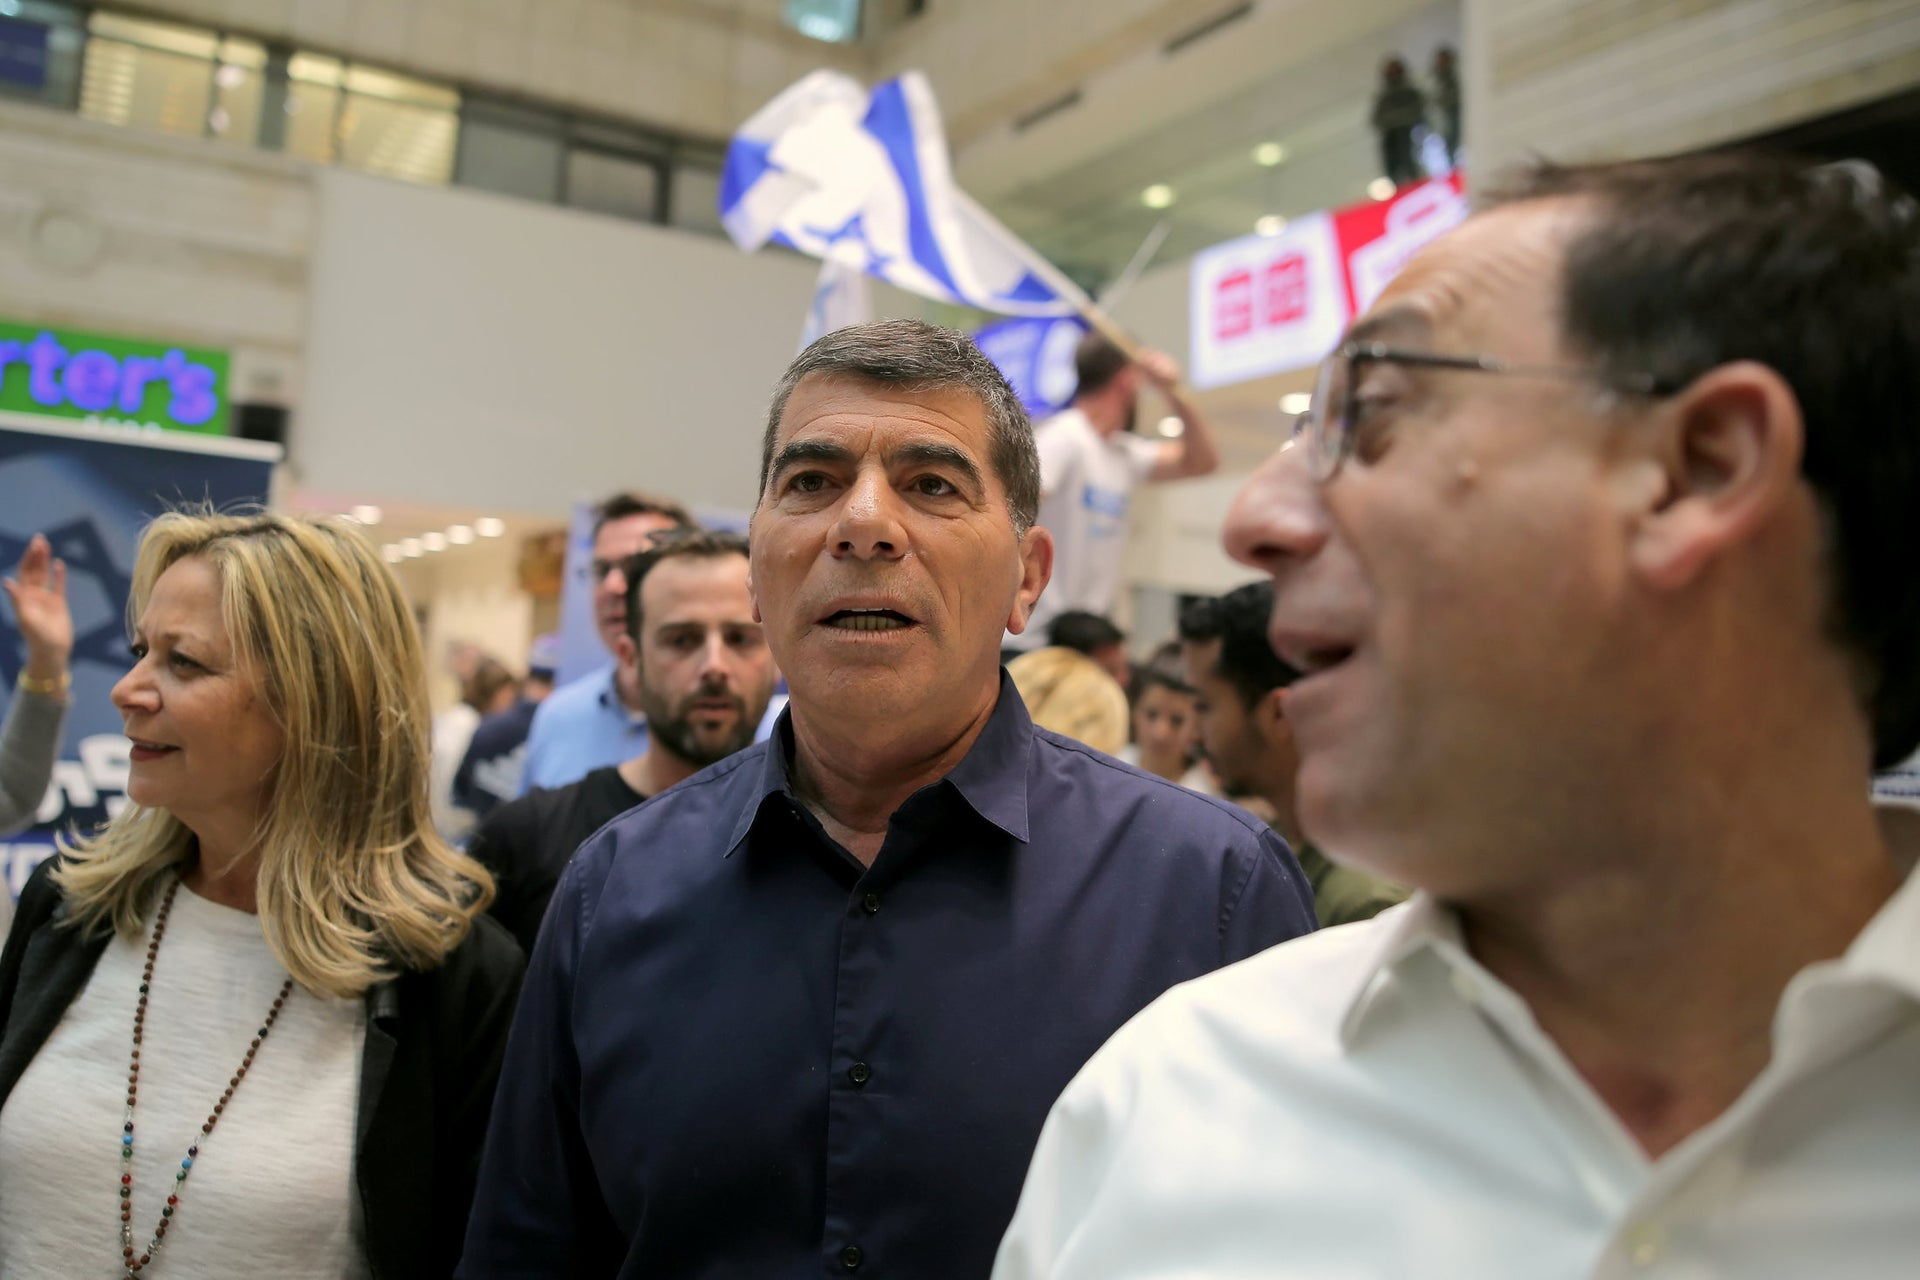 Kahol Lavan candidates Miki Haimovich and Gabi Ashkenazi meeting supporters at a mall in Rehovot, April 4, 2019.